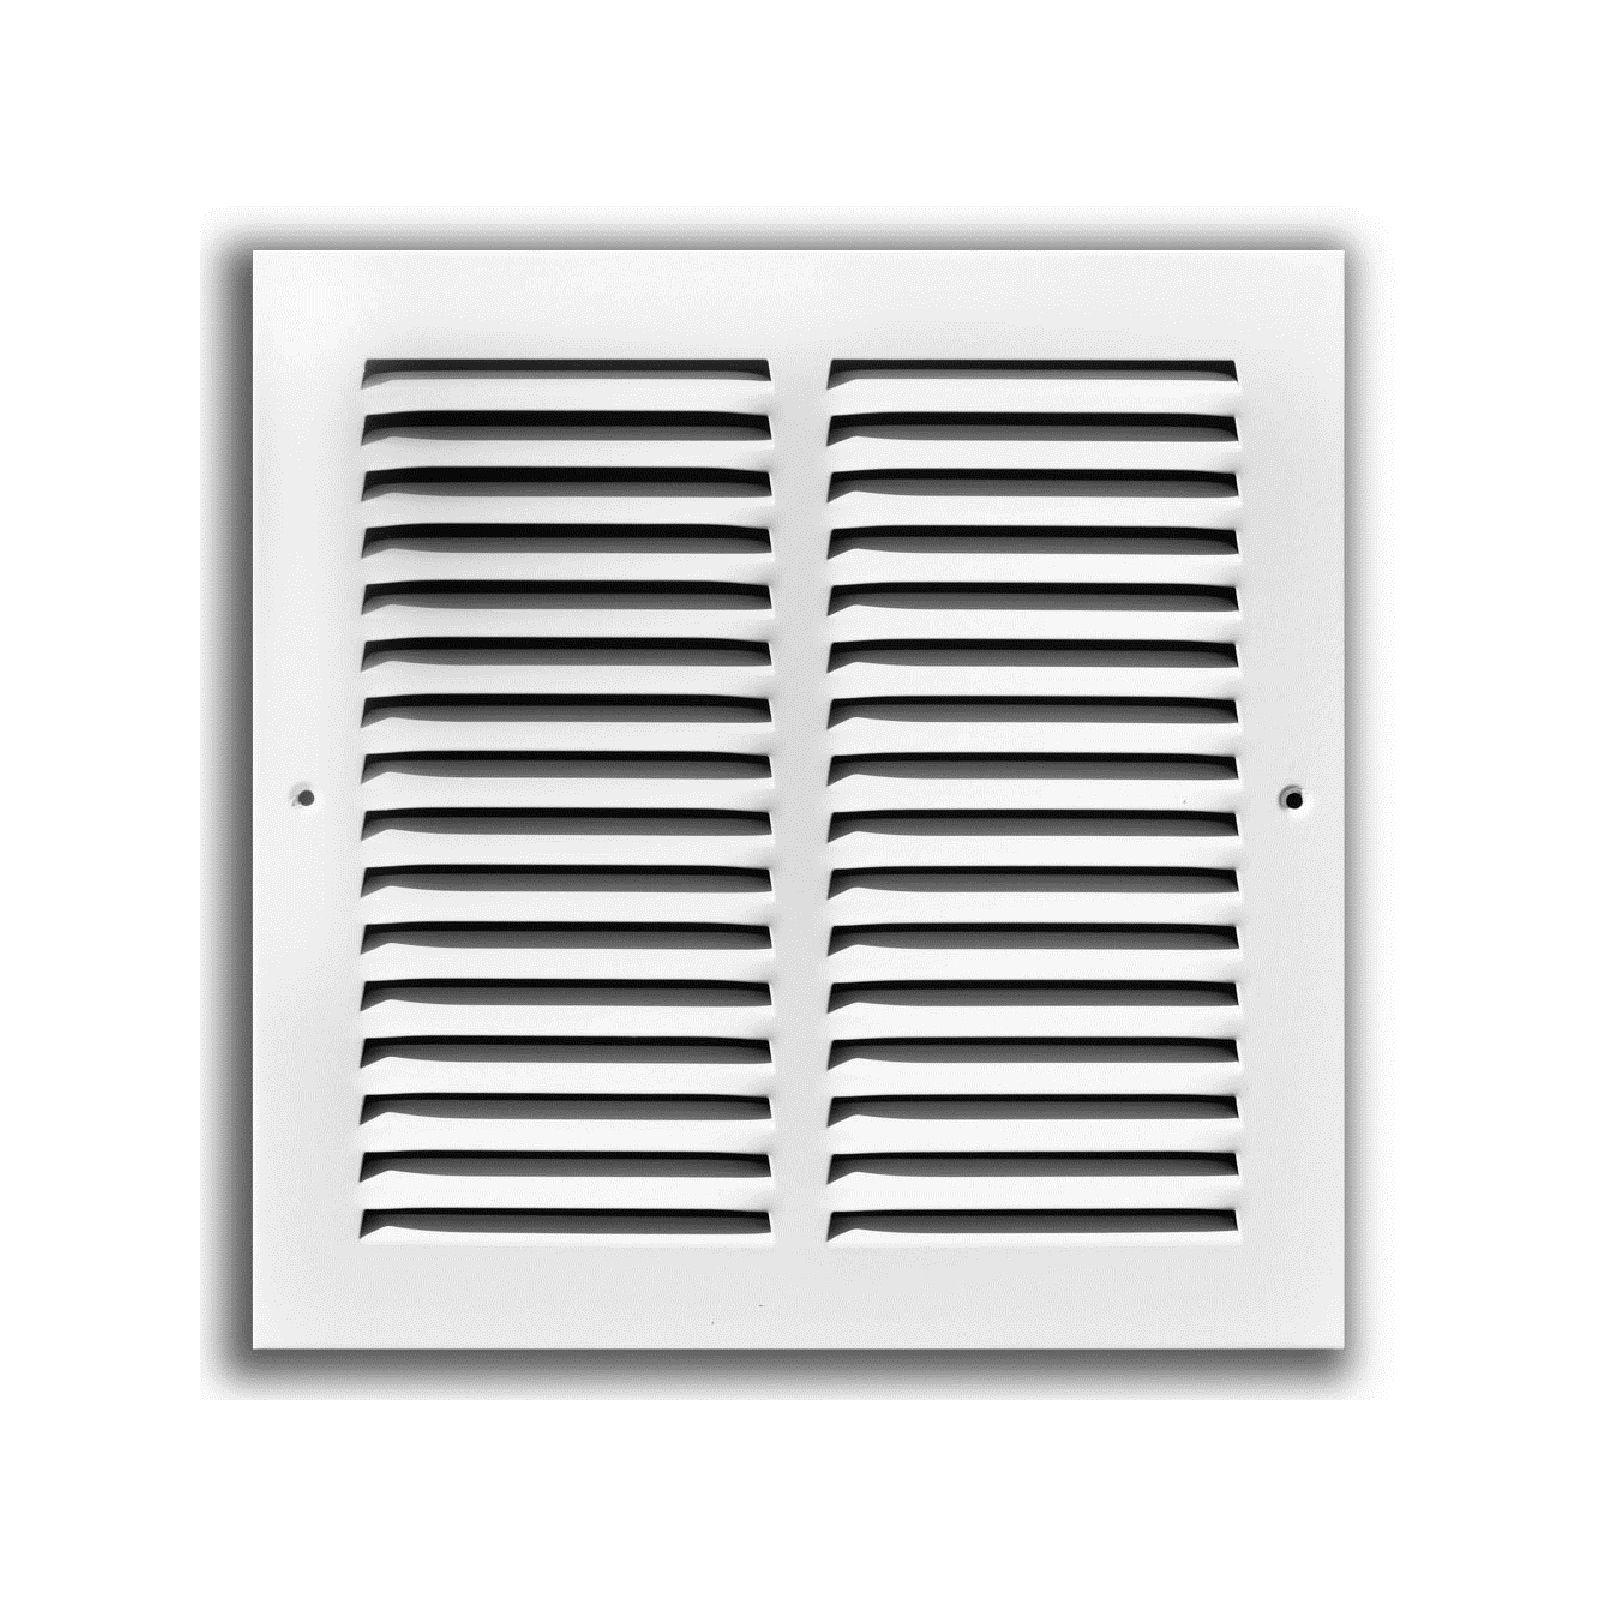 "TRUaire 170 14X06 - Steel Return Air Grille - 1/2"" Spaced Fin, White, 14"" X 06"""